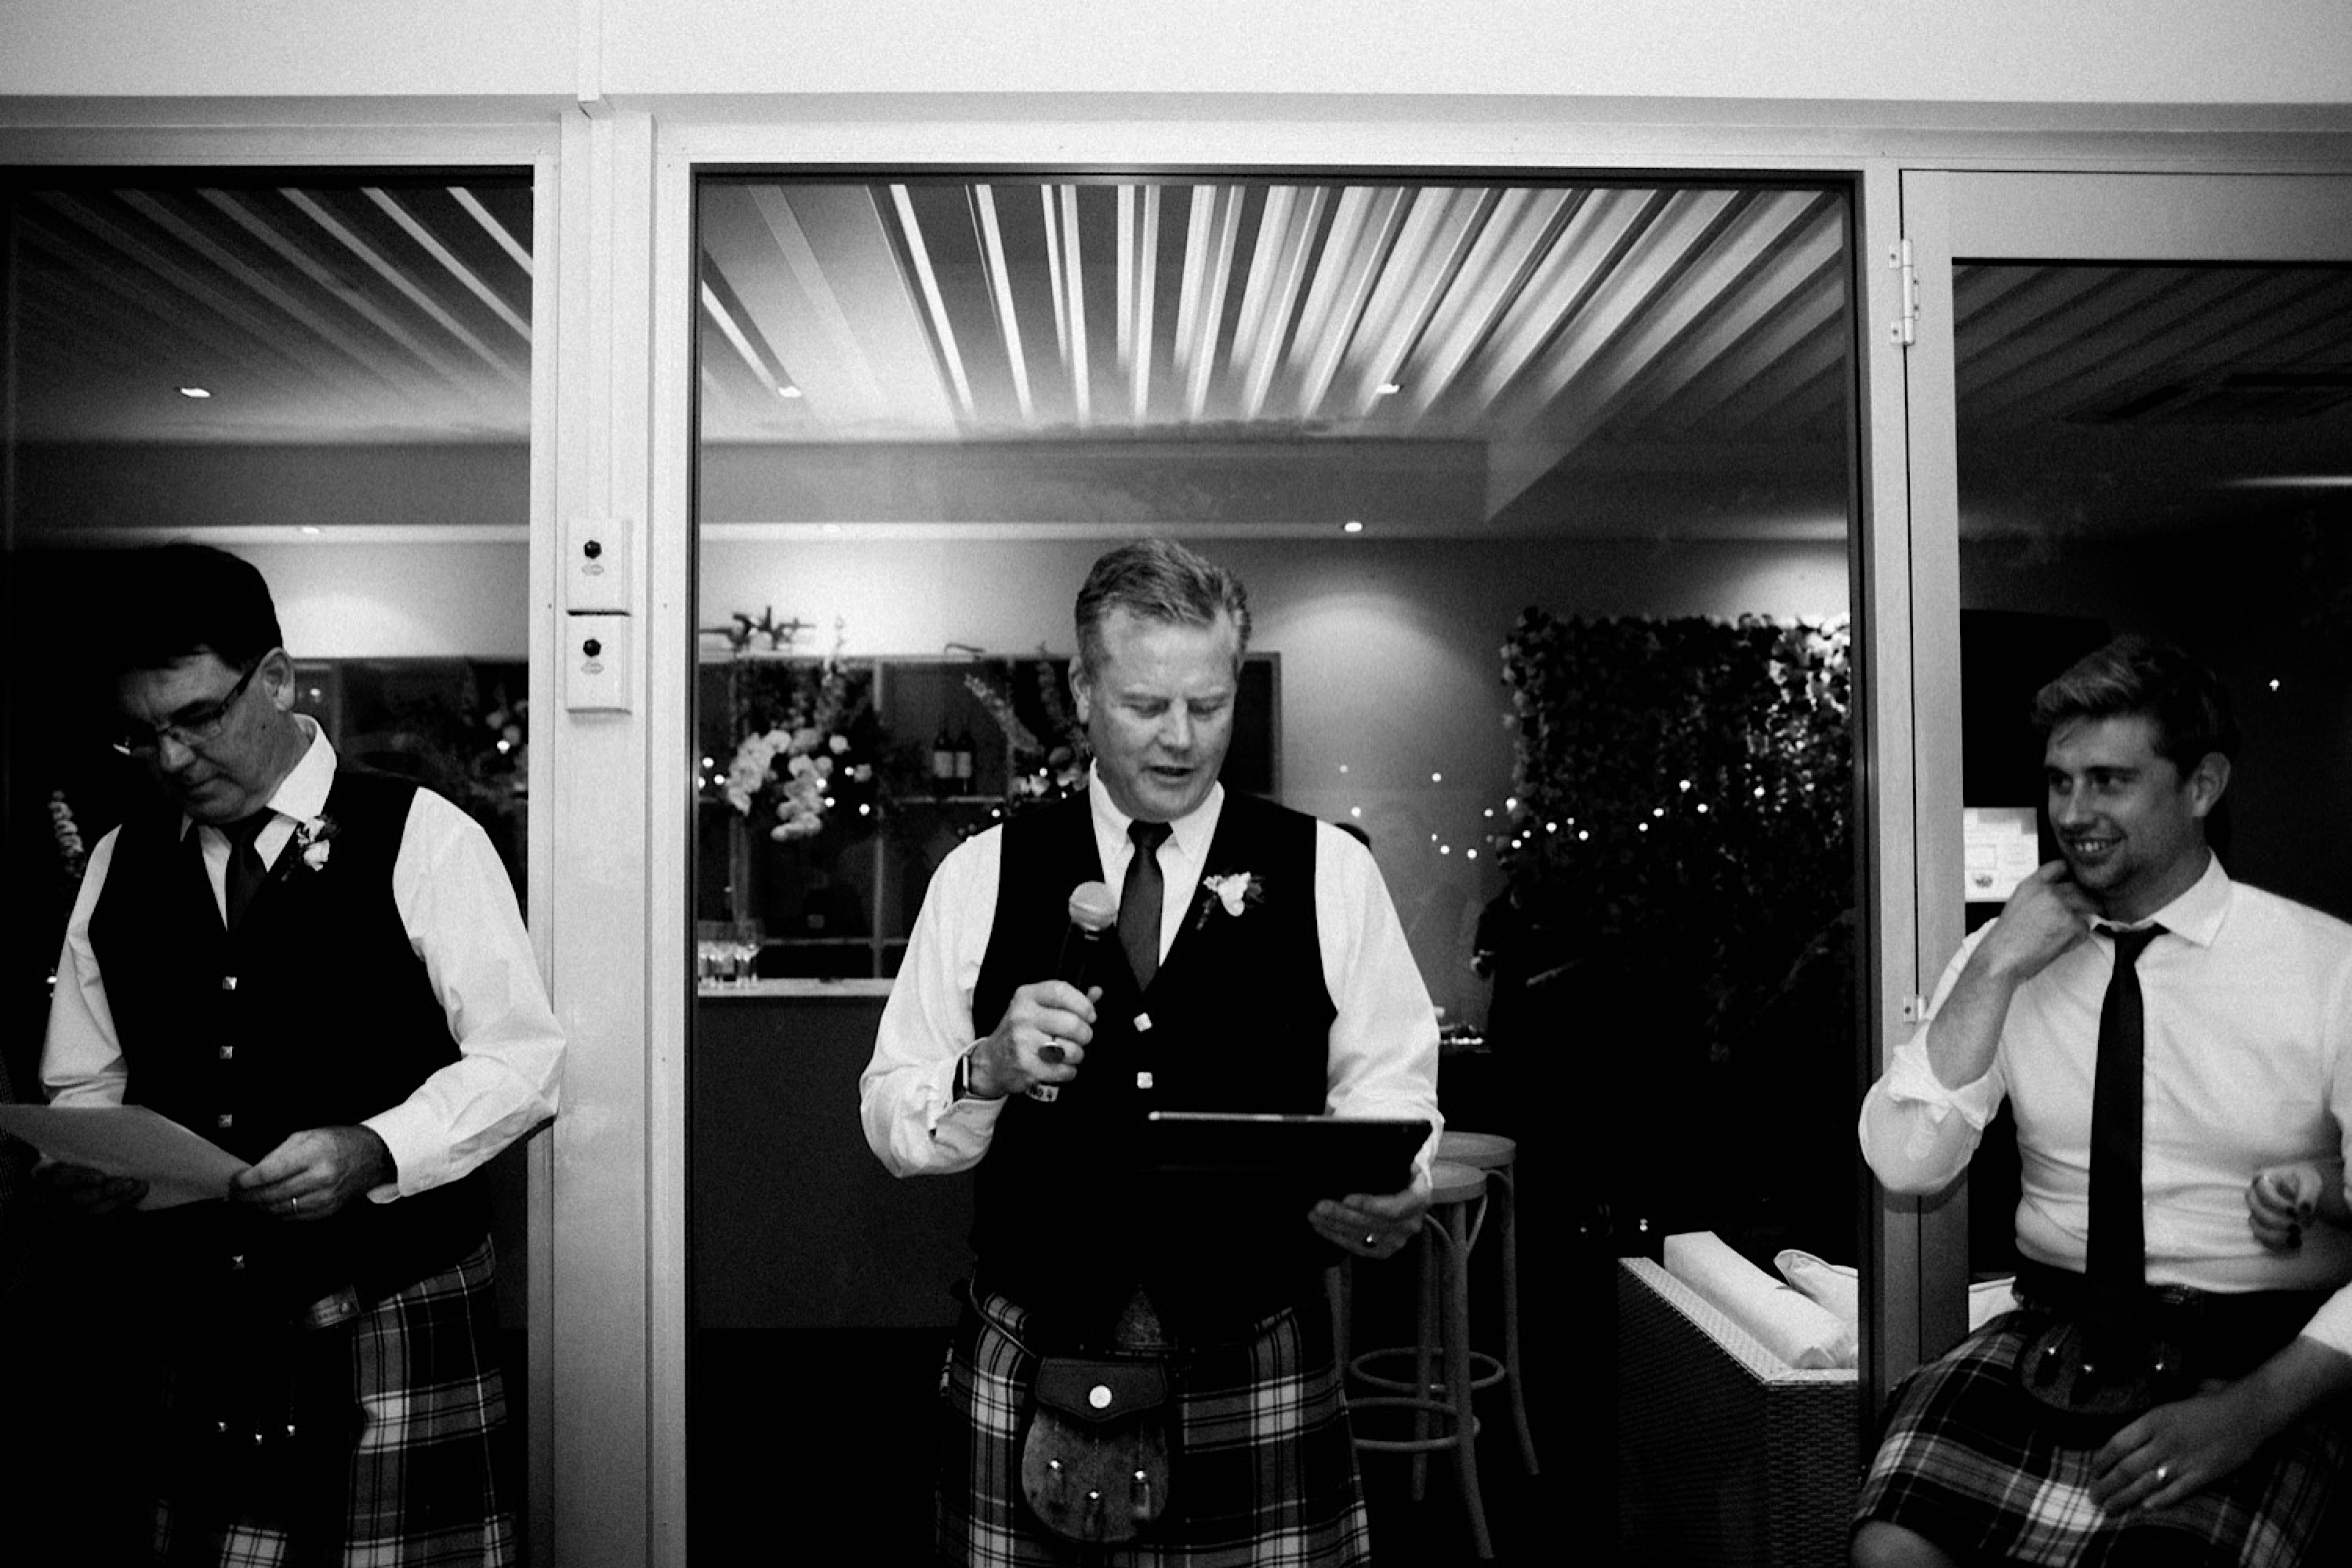 A black & white documentary photo of the father's of the bride & groom during speeches.